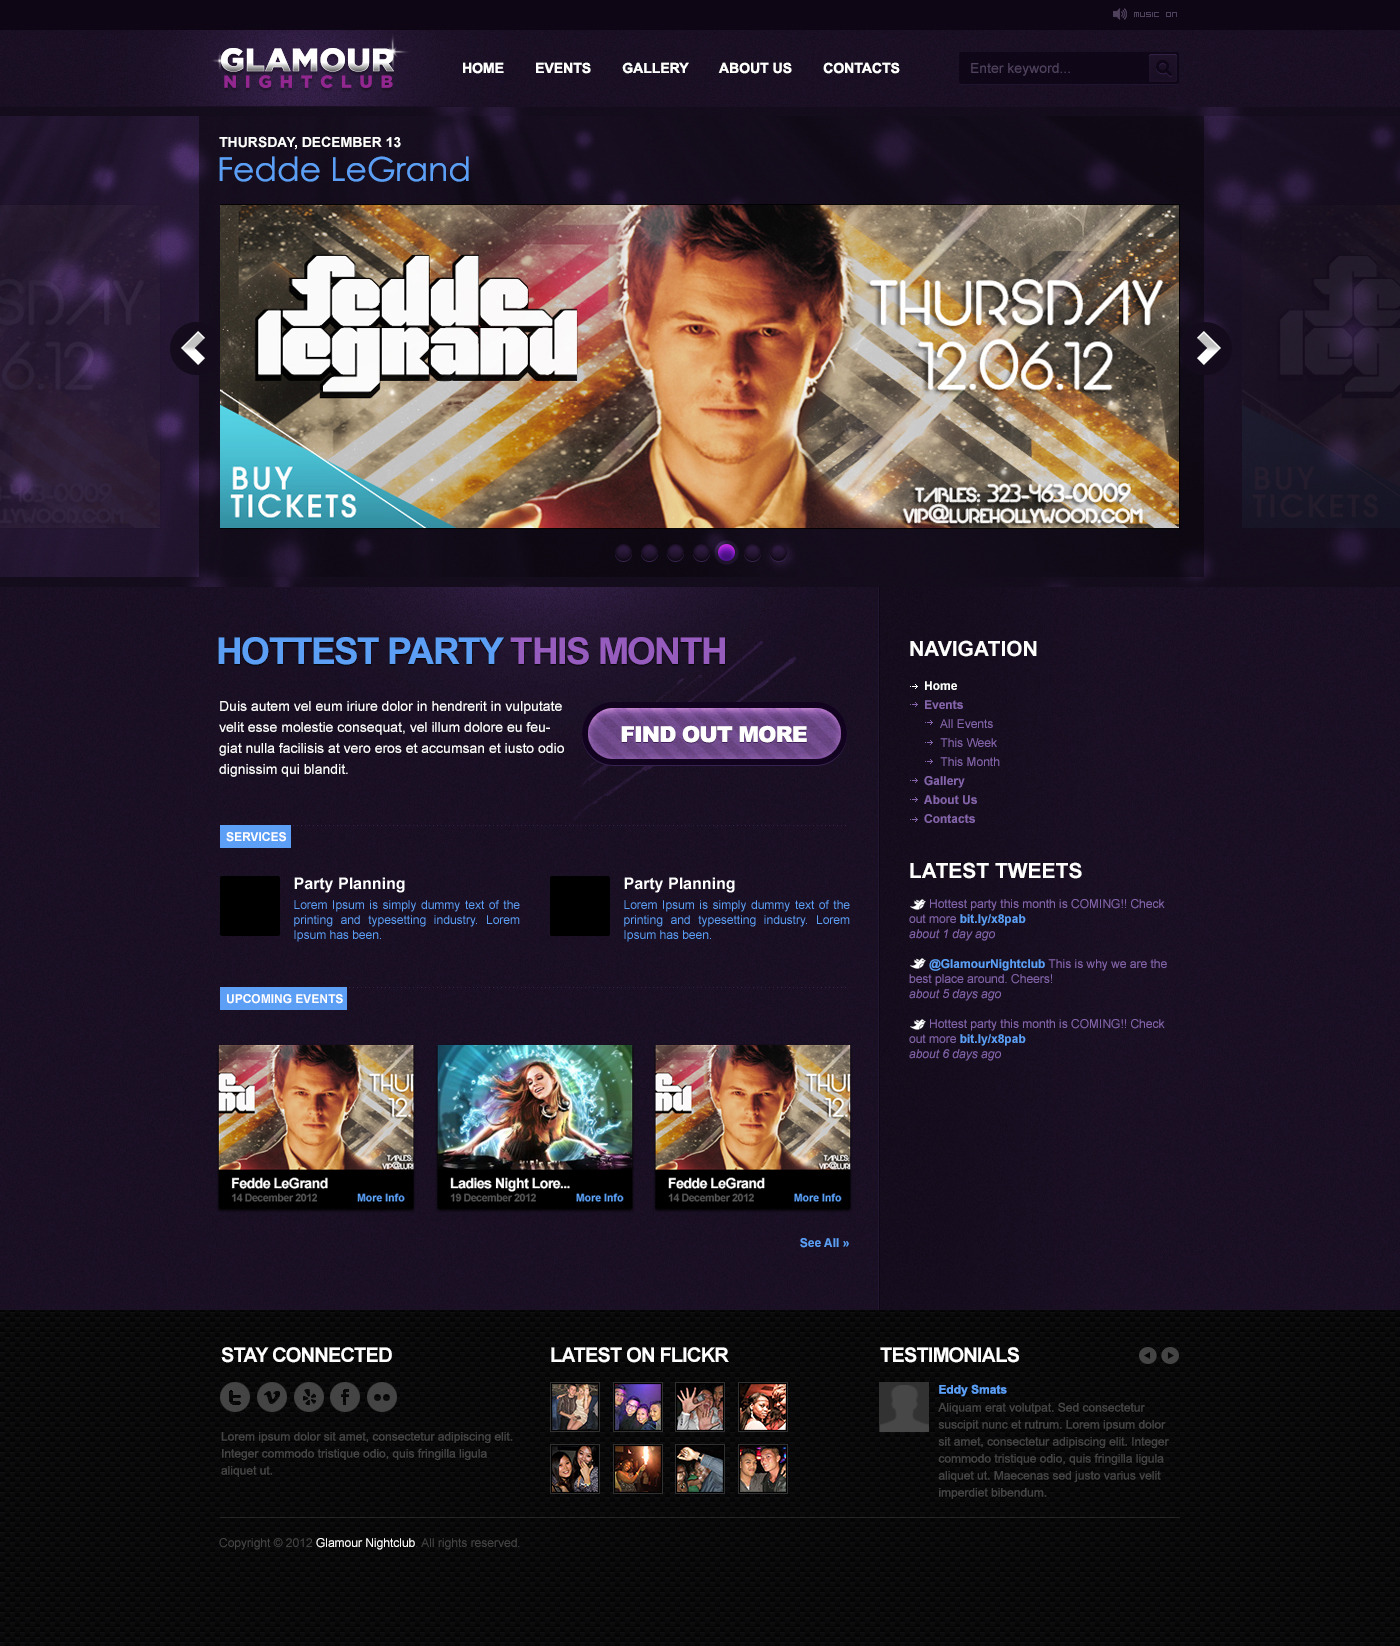 Glamour Nightclub - PSD Template by vacis | ThemeForest